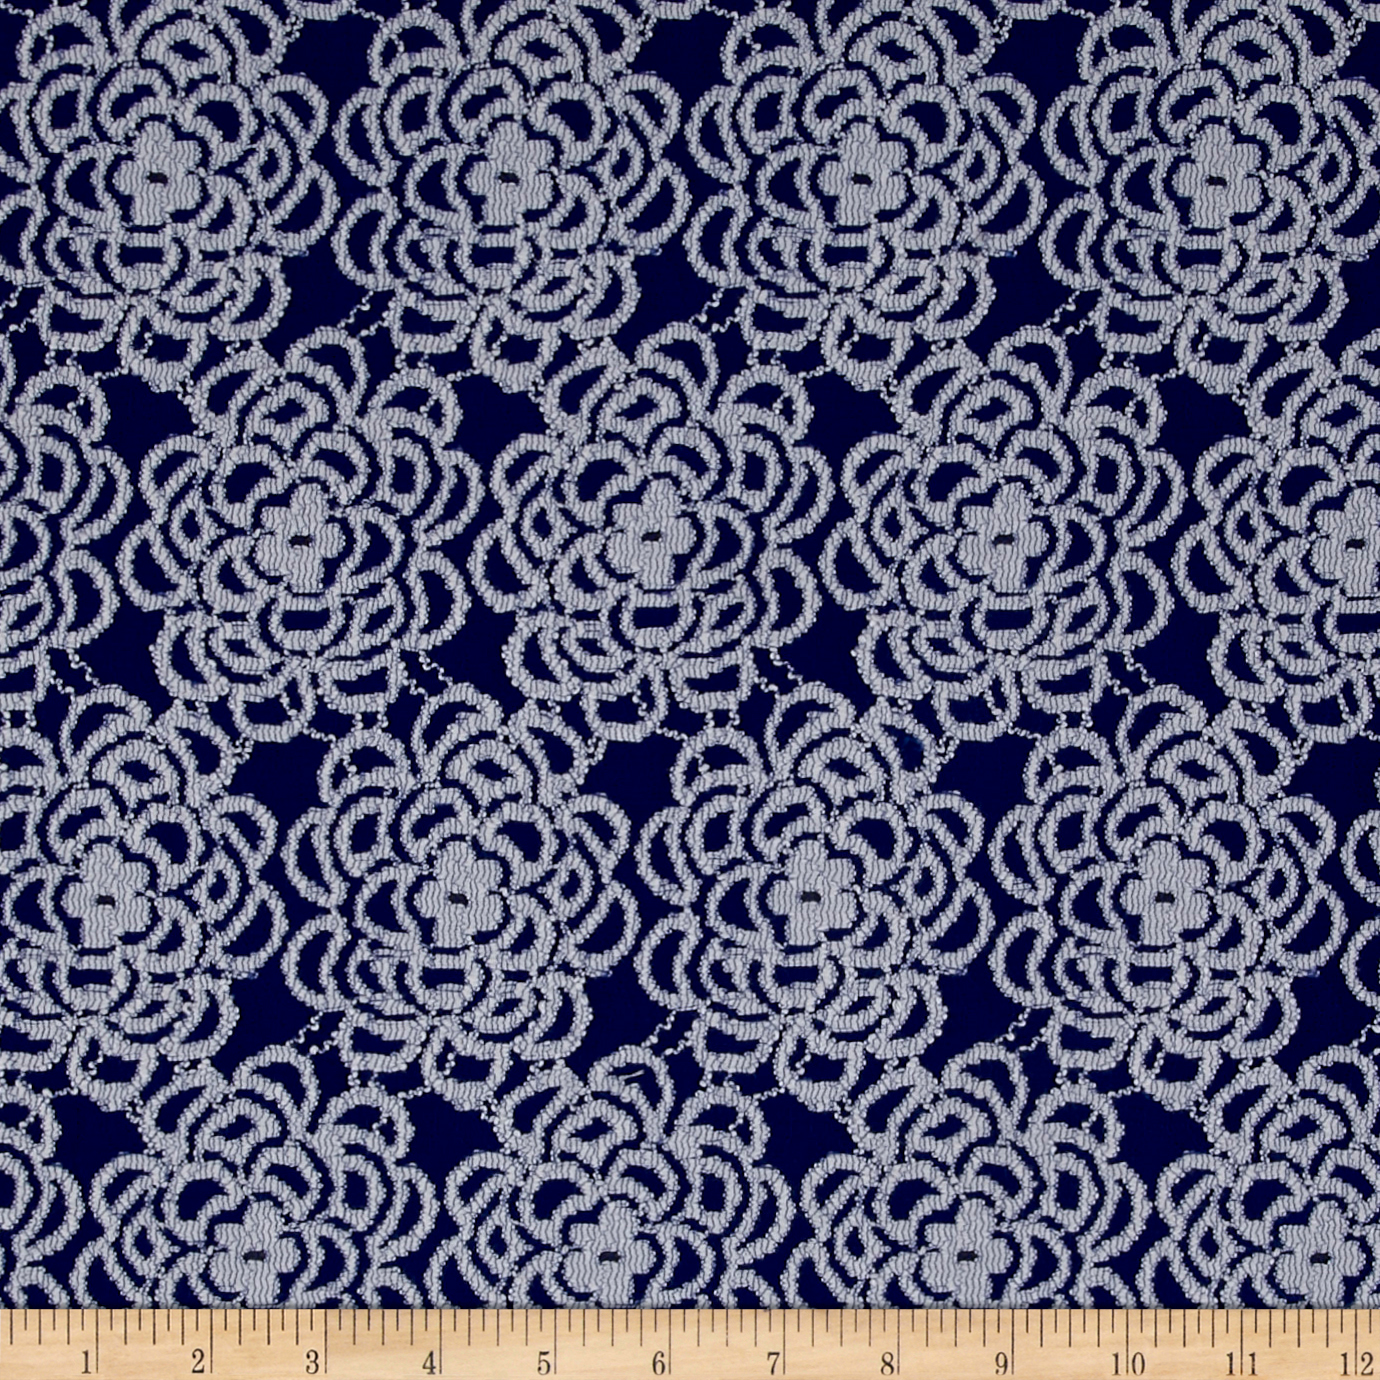 Floral Stretch Lace Royal Blue/White Fabric by Bellagio in USA